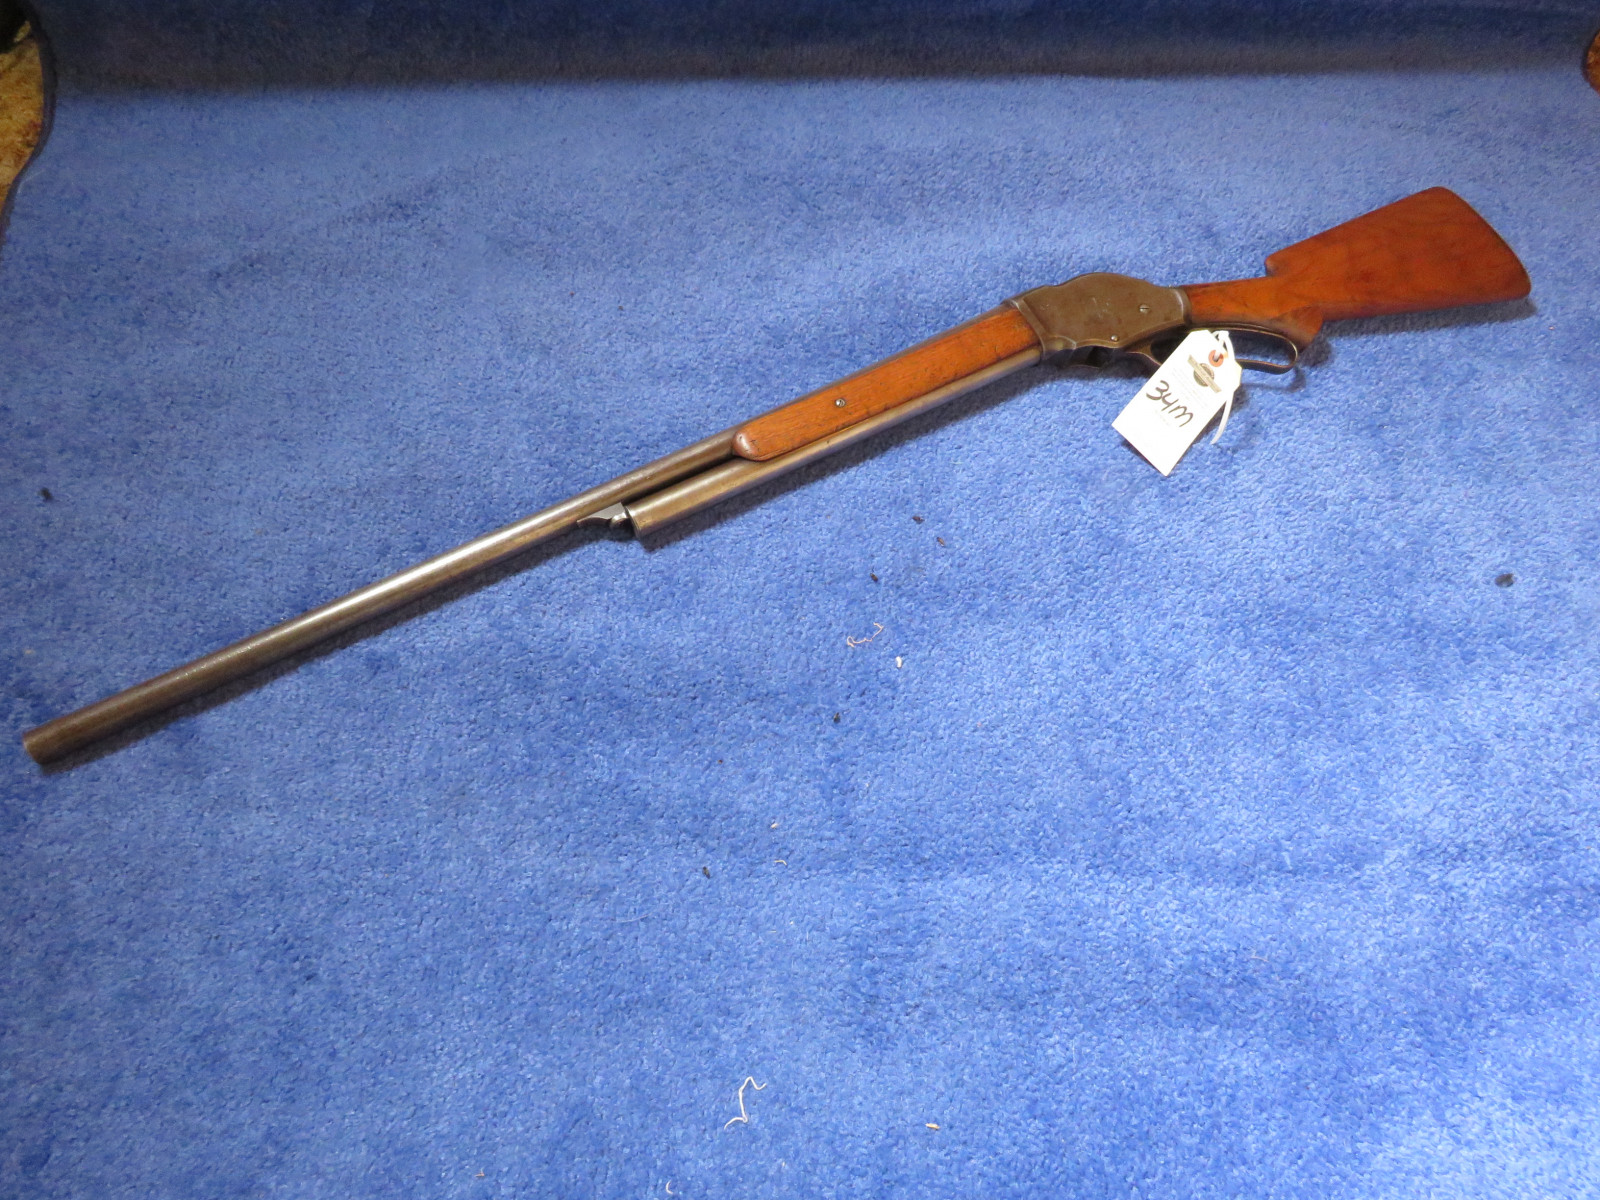 Winchester Repeating Arms Lever Action Shotgun - Image 2